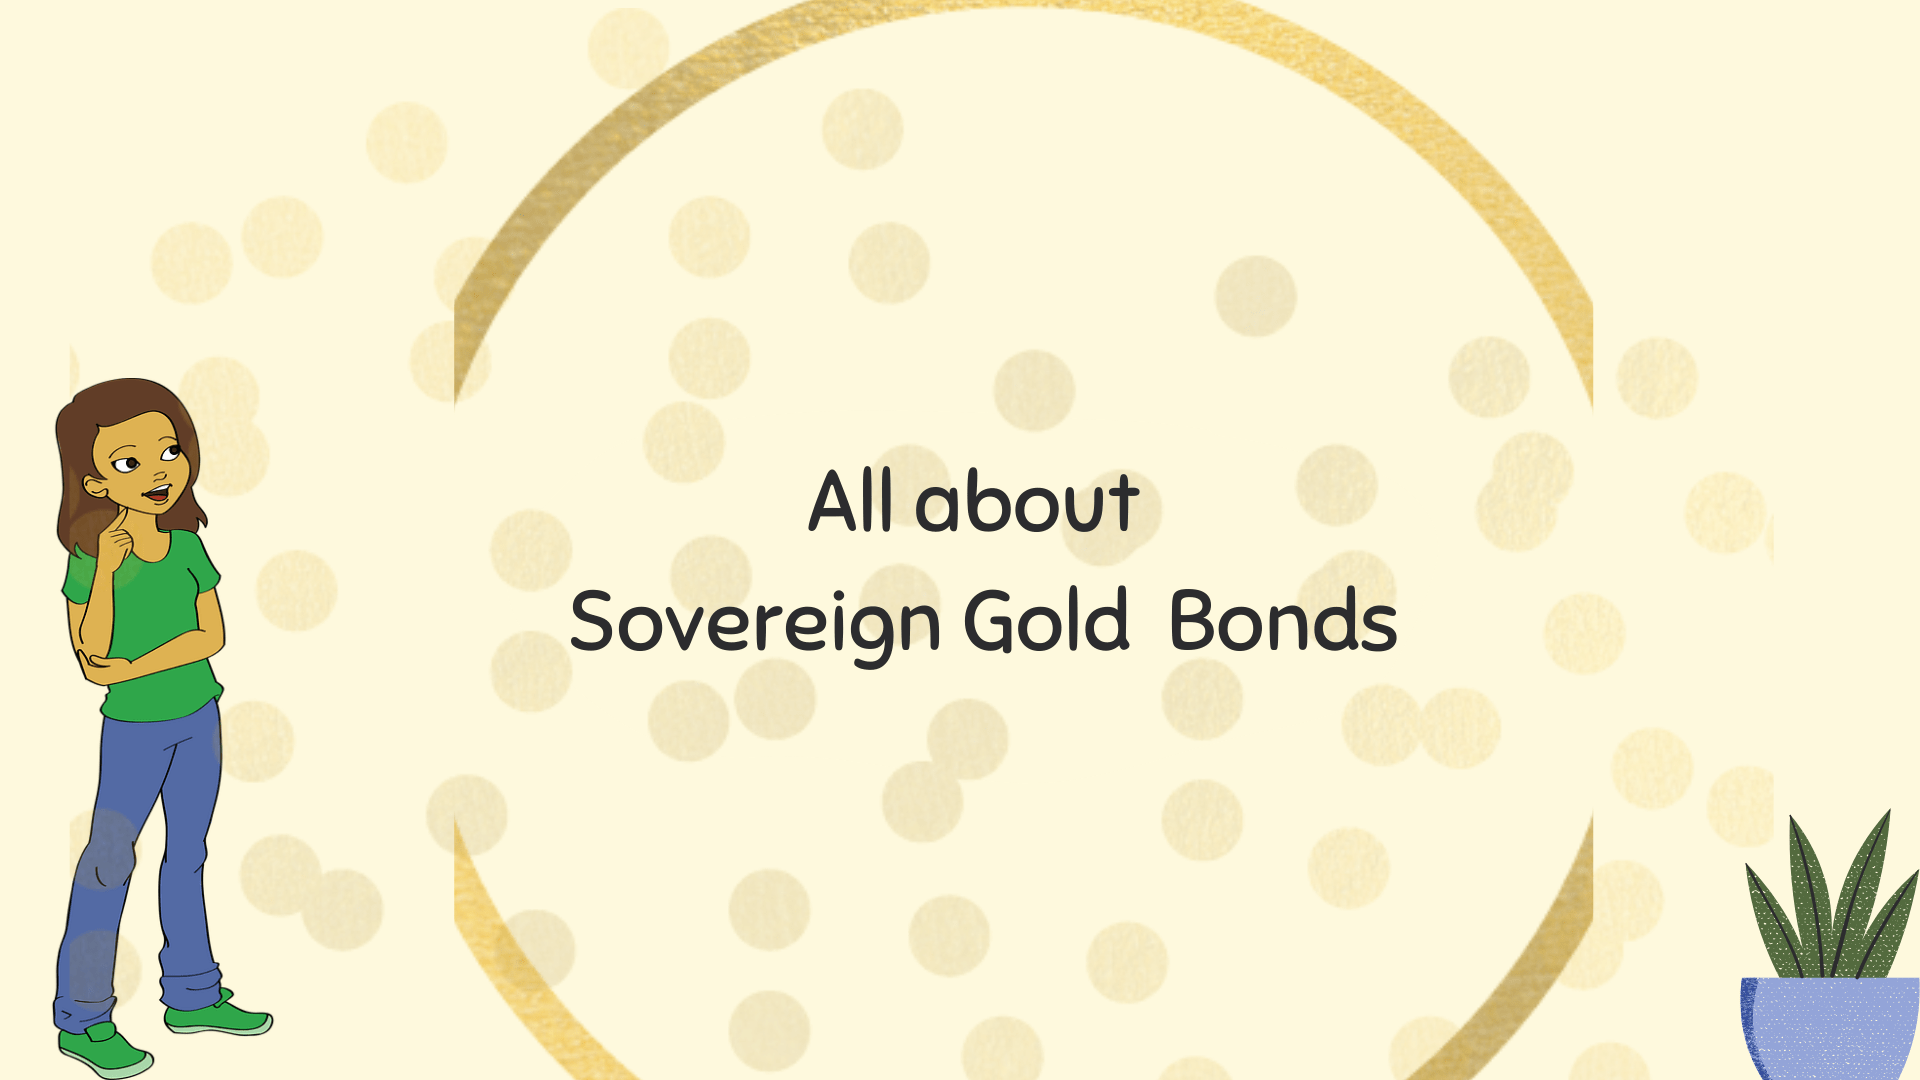 Are Sovereign Gold bonds a good investment?